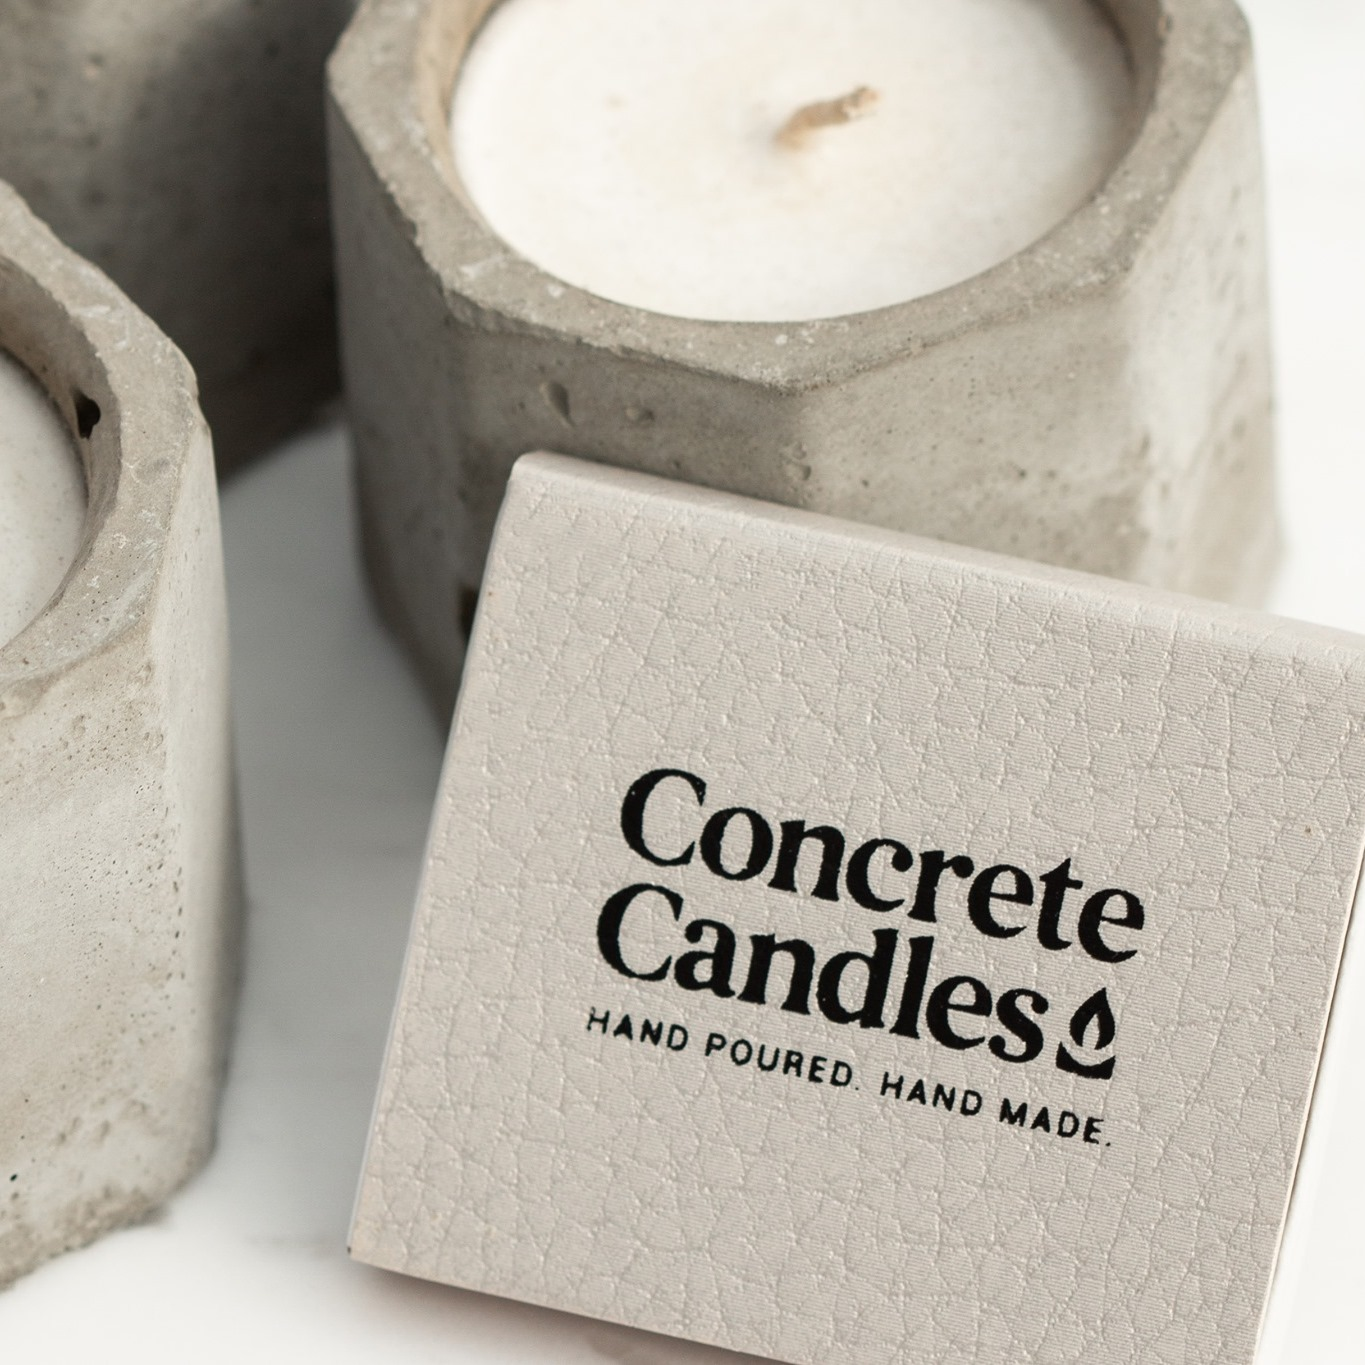 Concrete Candles Hand Made, Hand Poured All Natural Concrete Candles